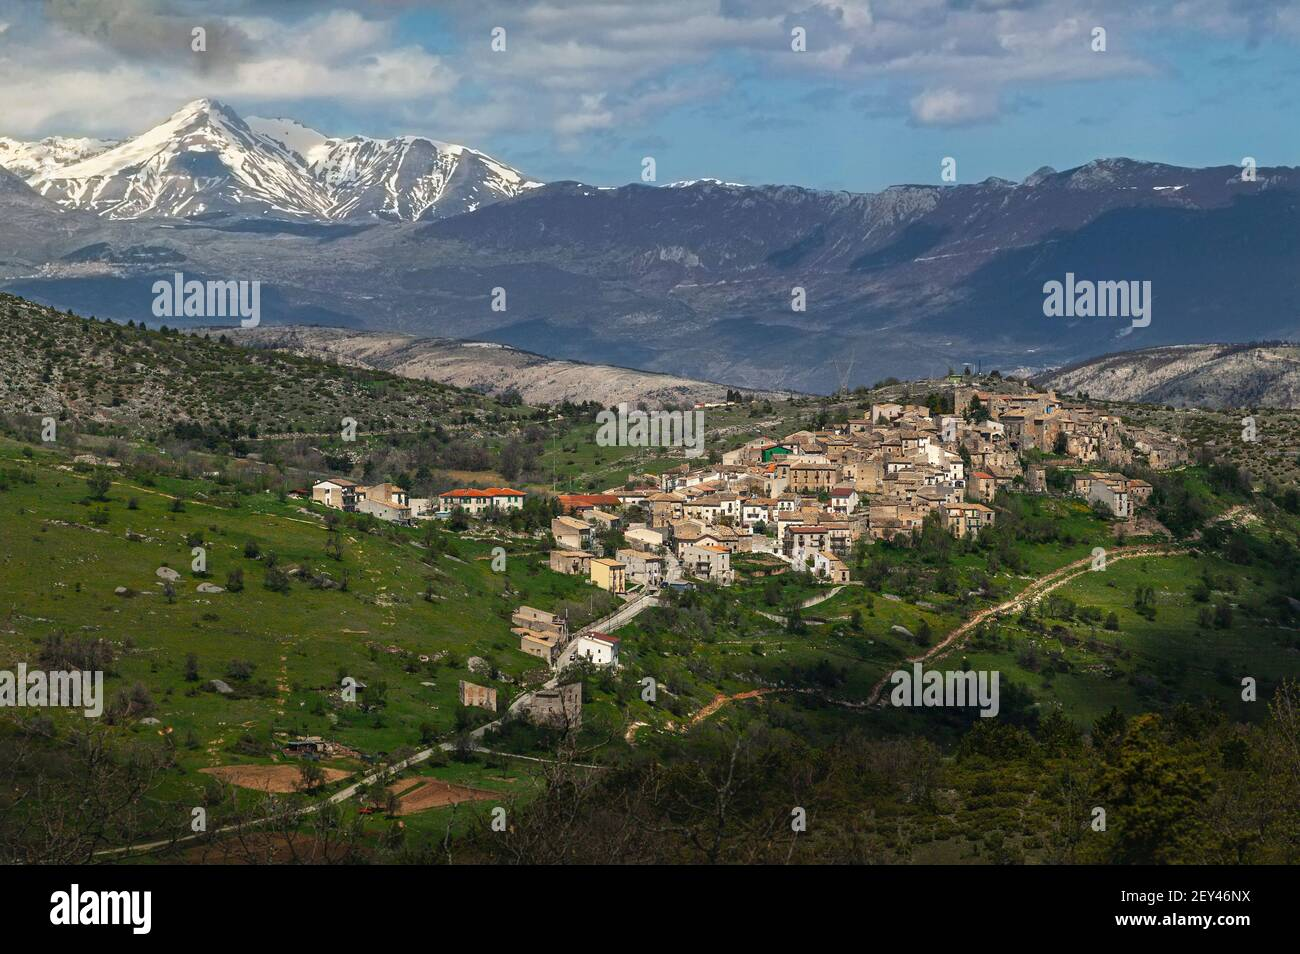 Aerial view of the medieval village of San Benedetto in Perillis. In the background, the Monte Camicia of the Gran Sasso mountain range. Abruzzo Stock Photo